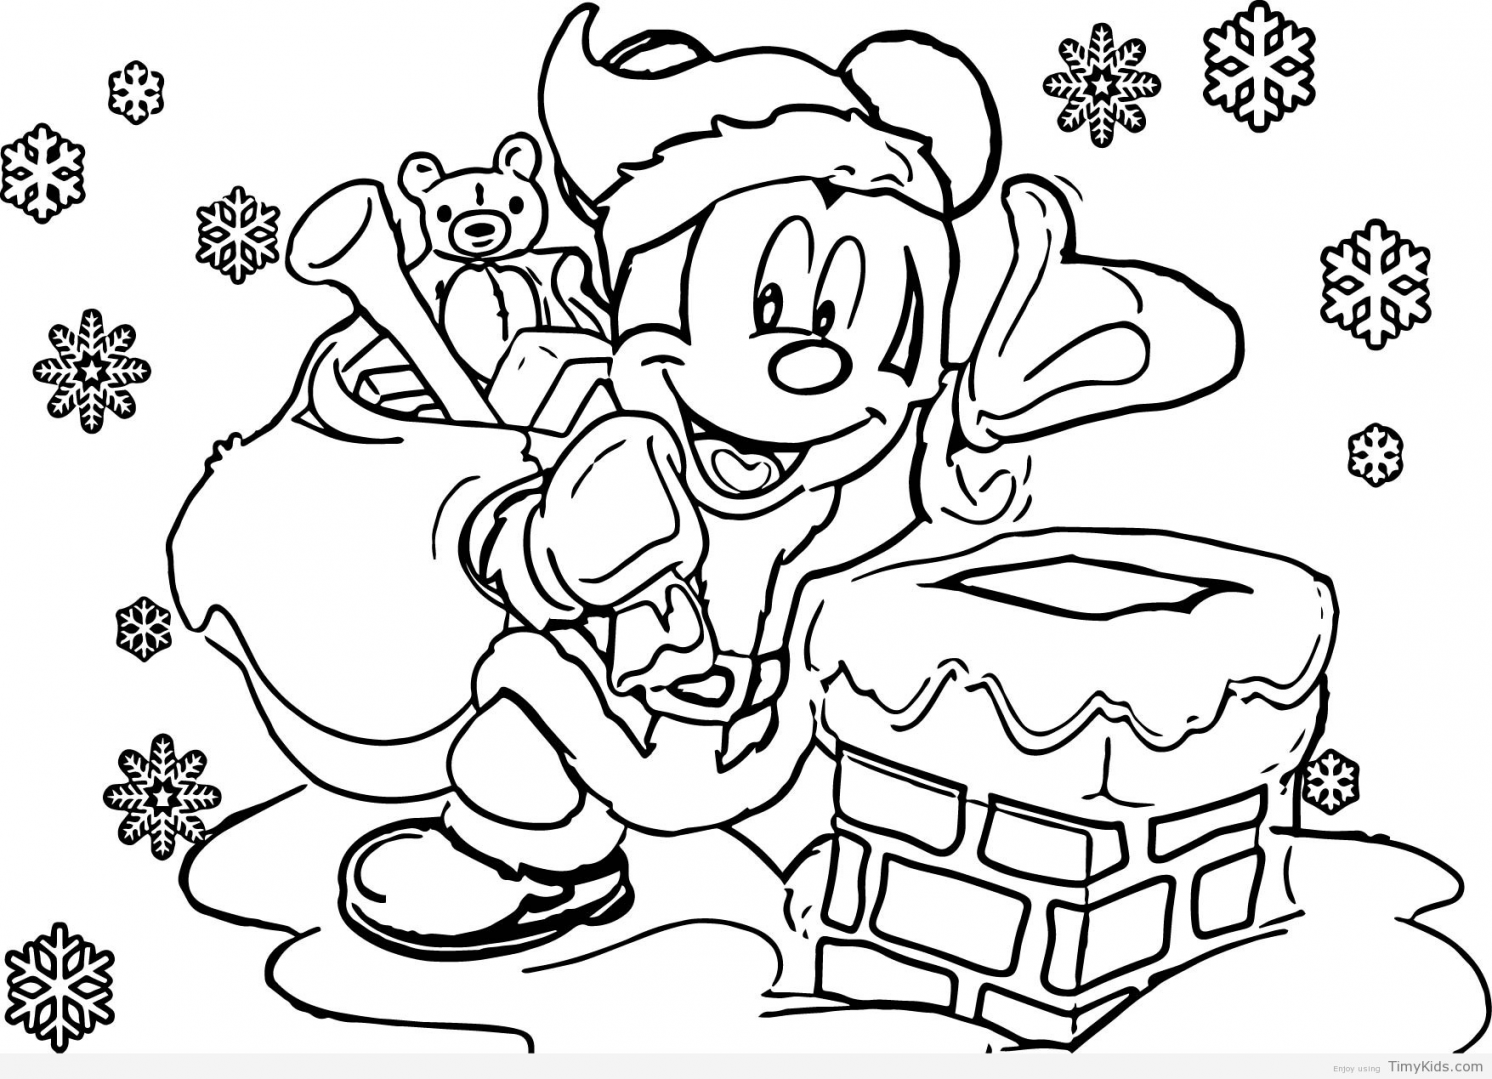 Xmas Coloring Pages Printable With The Free Christmas For Kids